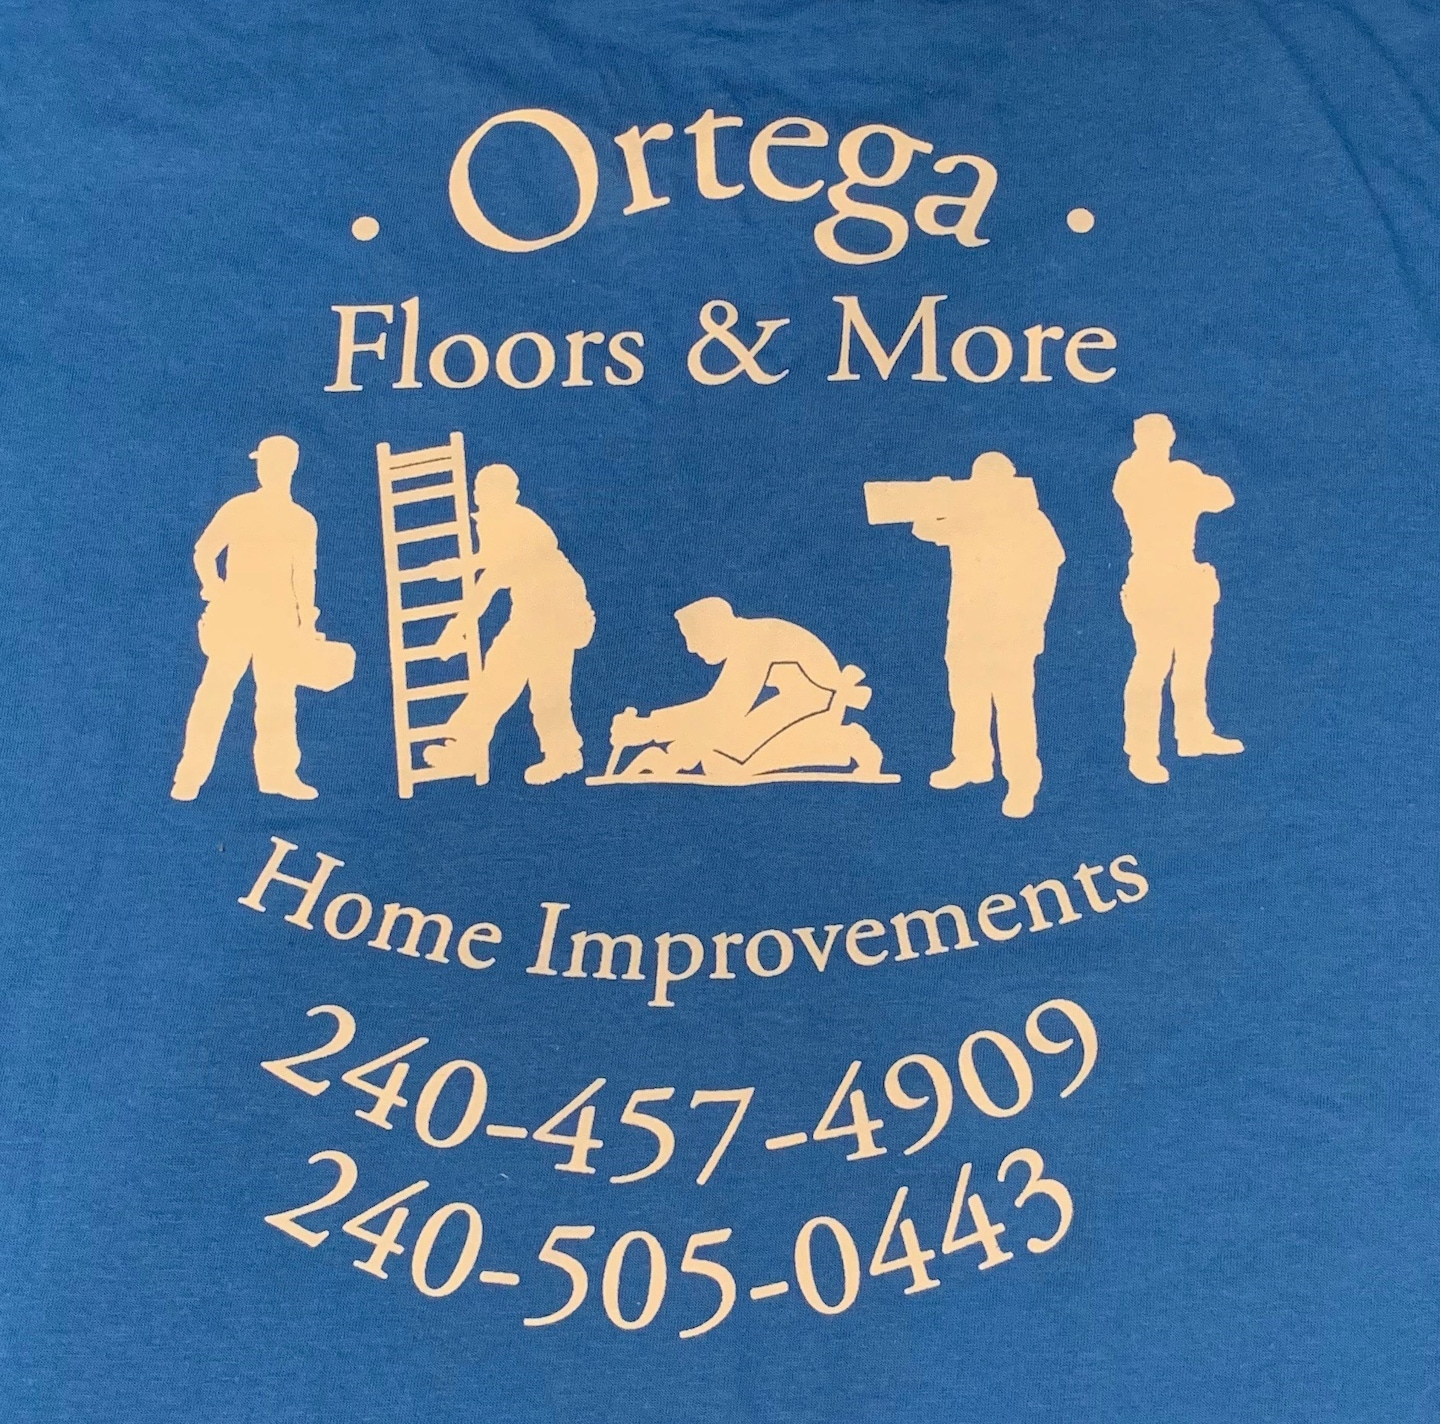 Ortega Floors & More